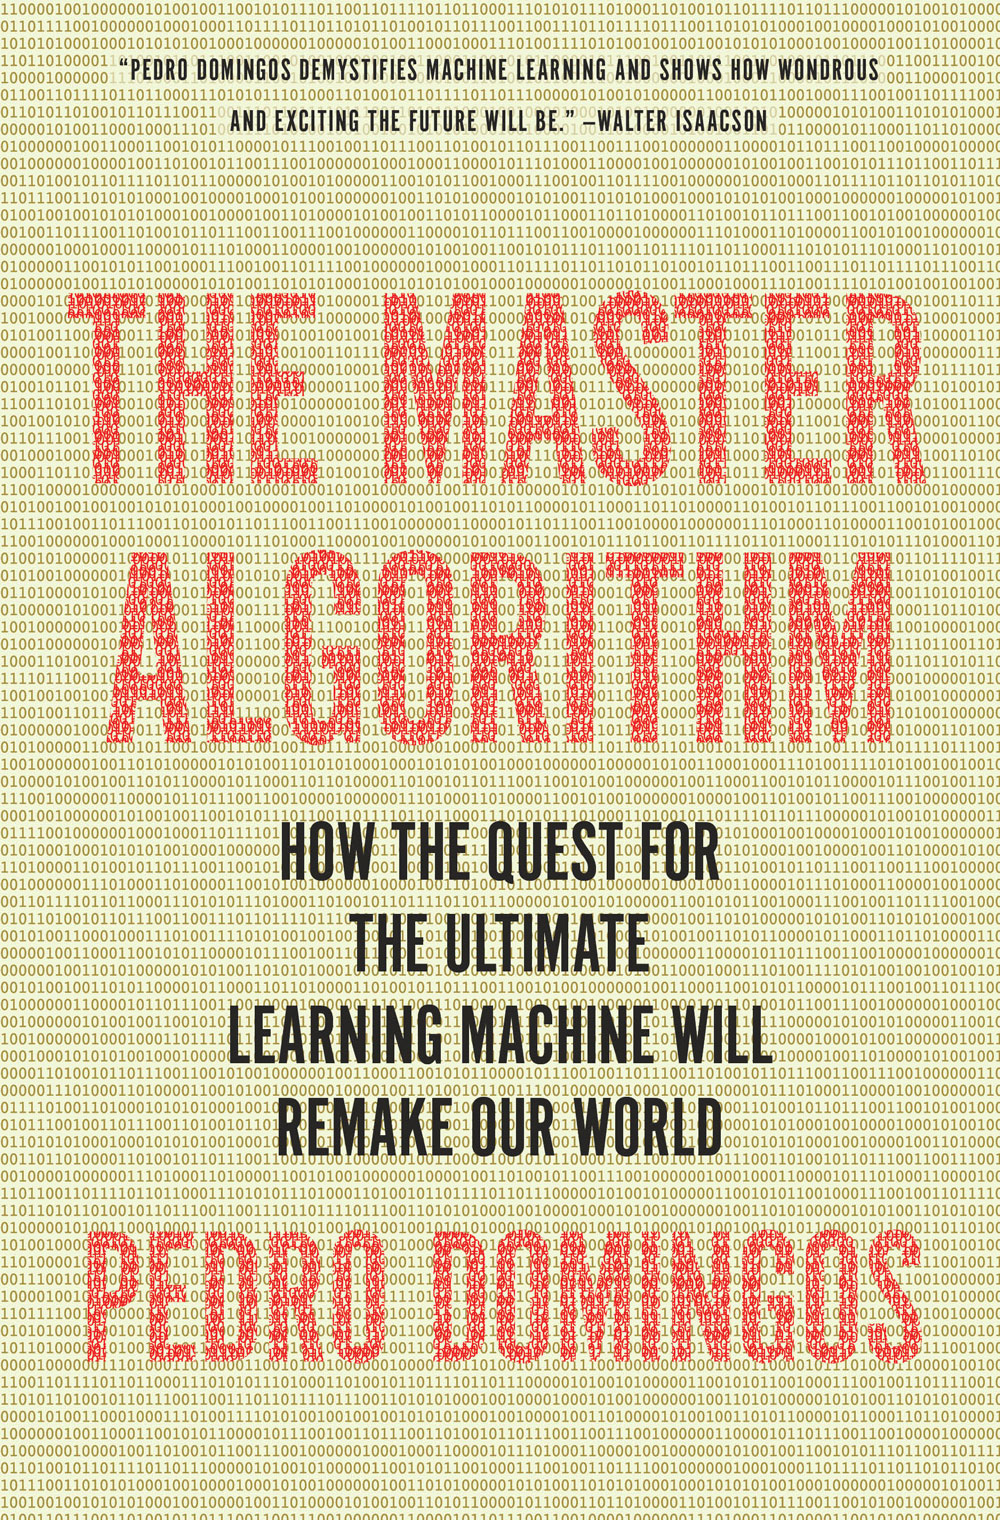 The_Master_Algorithm_Pedros_Domingos